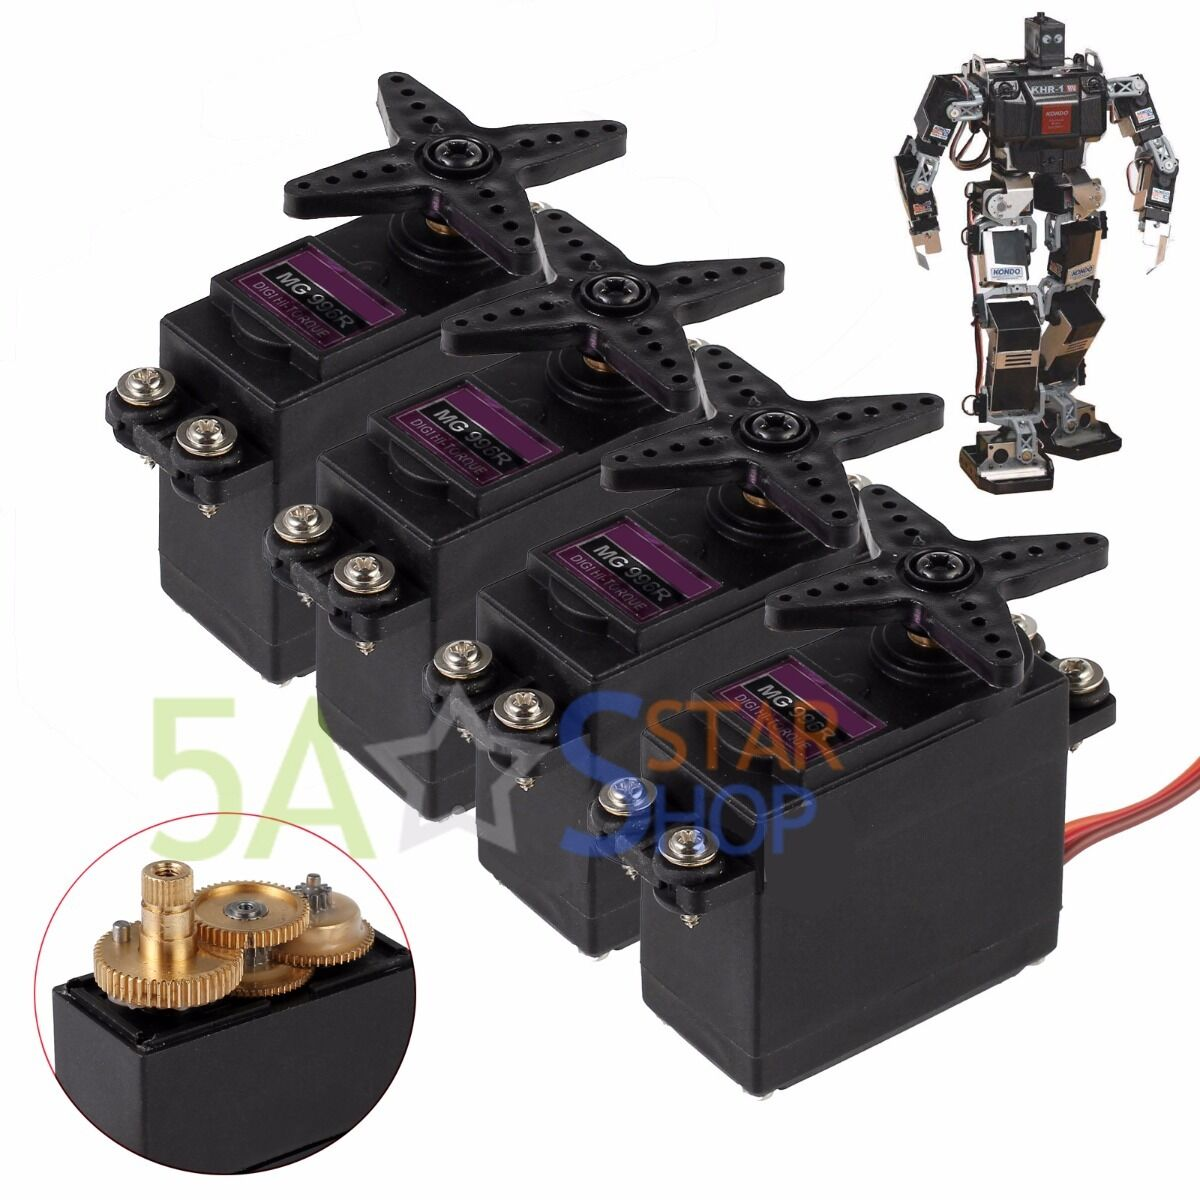 4 x MG996R Digitale Torque Servo Metal Gear für JR 2C RC Auto Boot Rc Helikopter